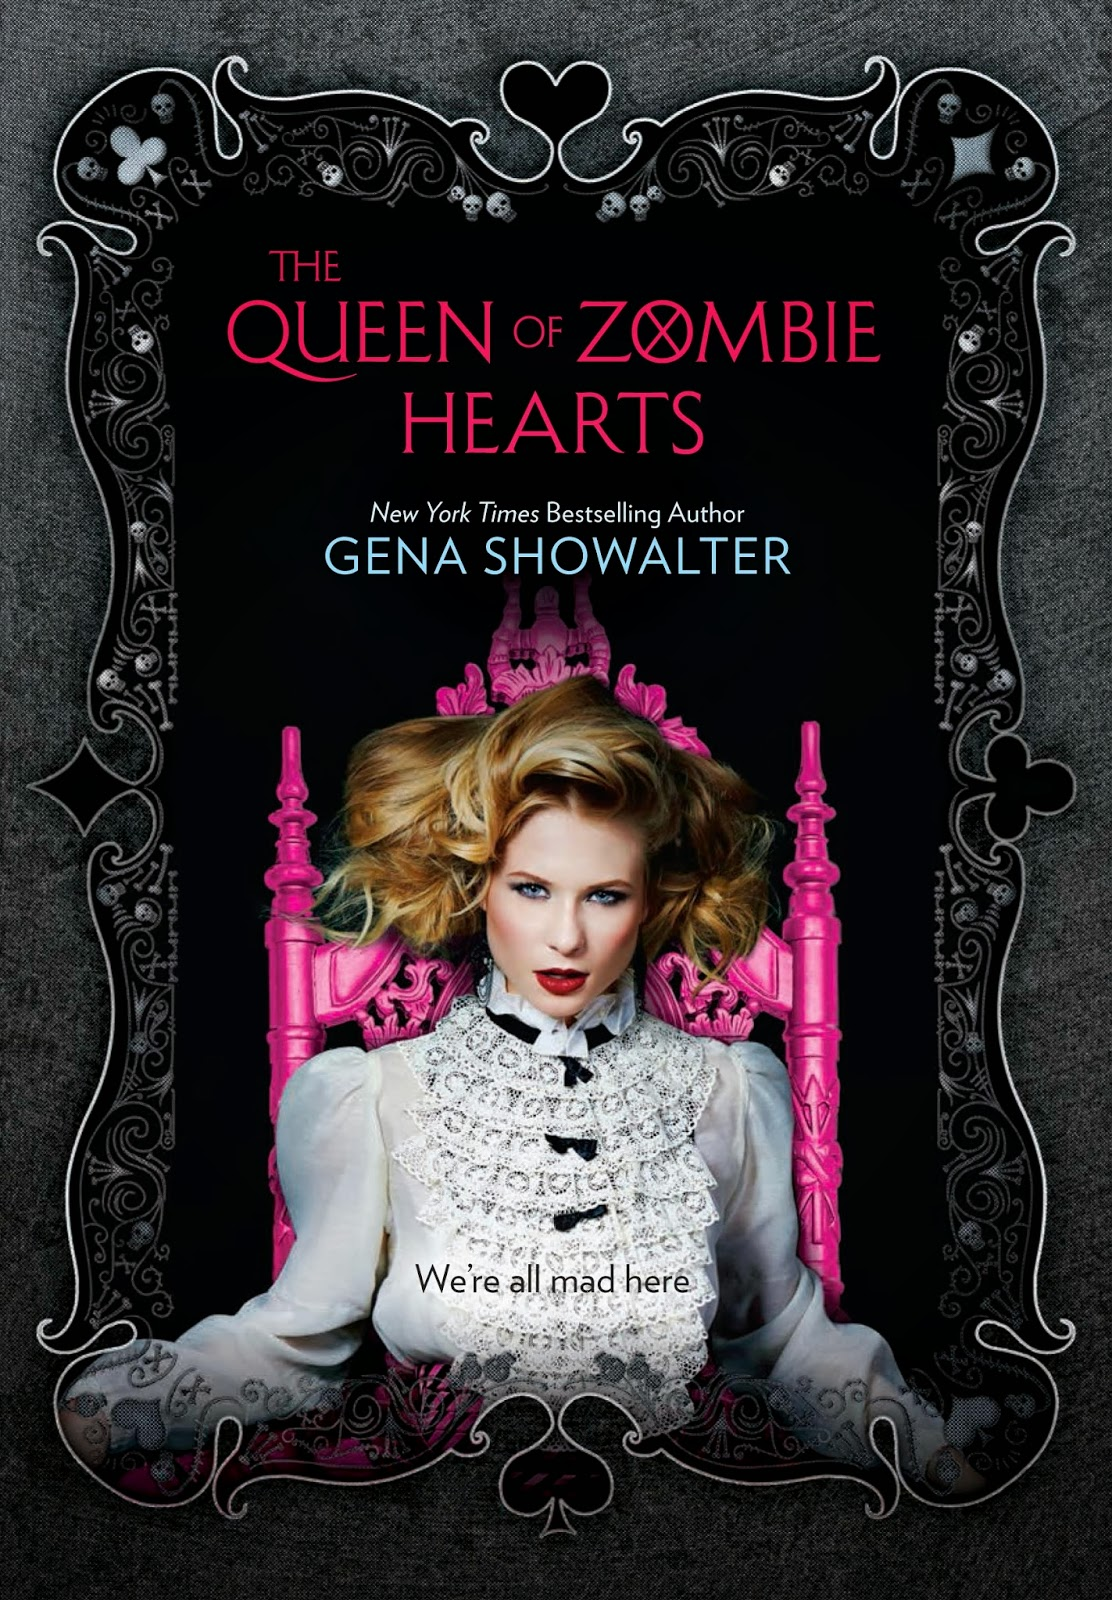 vvb32 reads: Cover reveal: Queen of Zombie Hearts by Gena Showalter